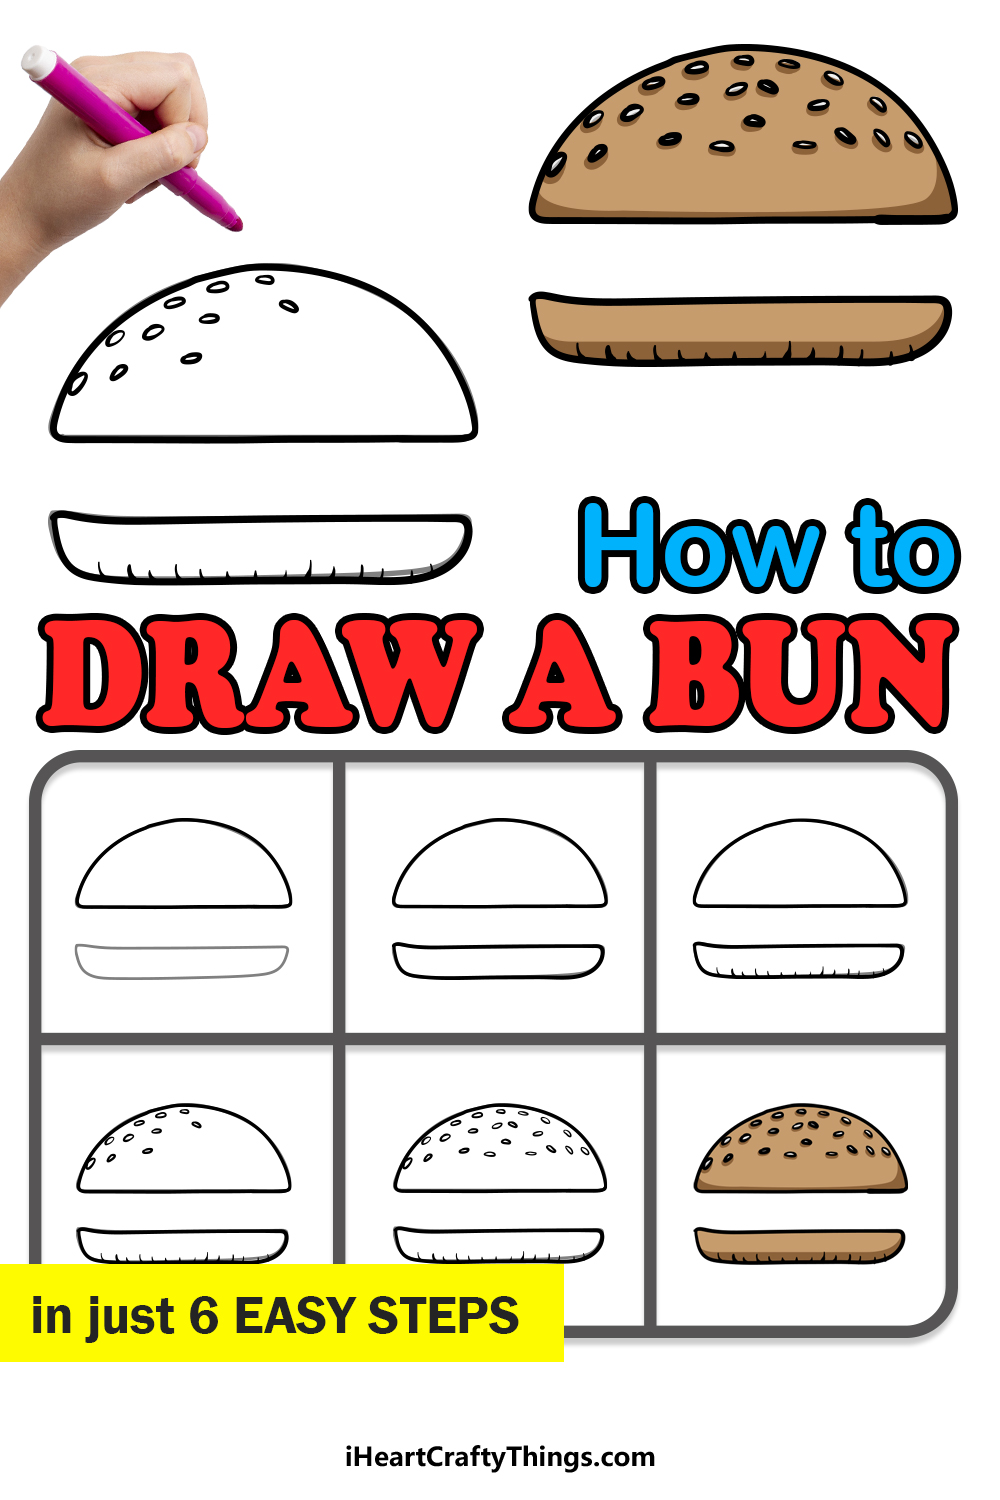 how to draw a bun in 6 easy steps